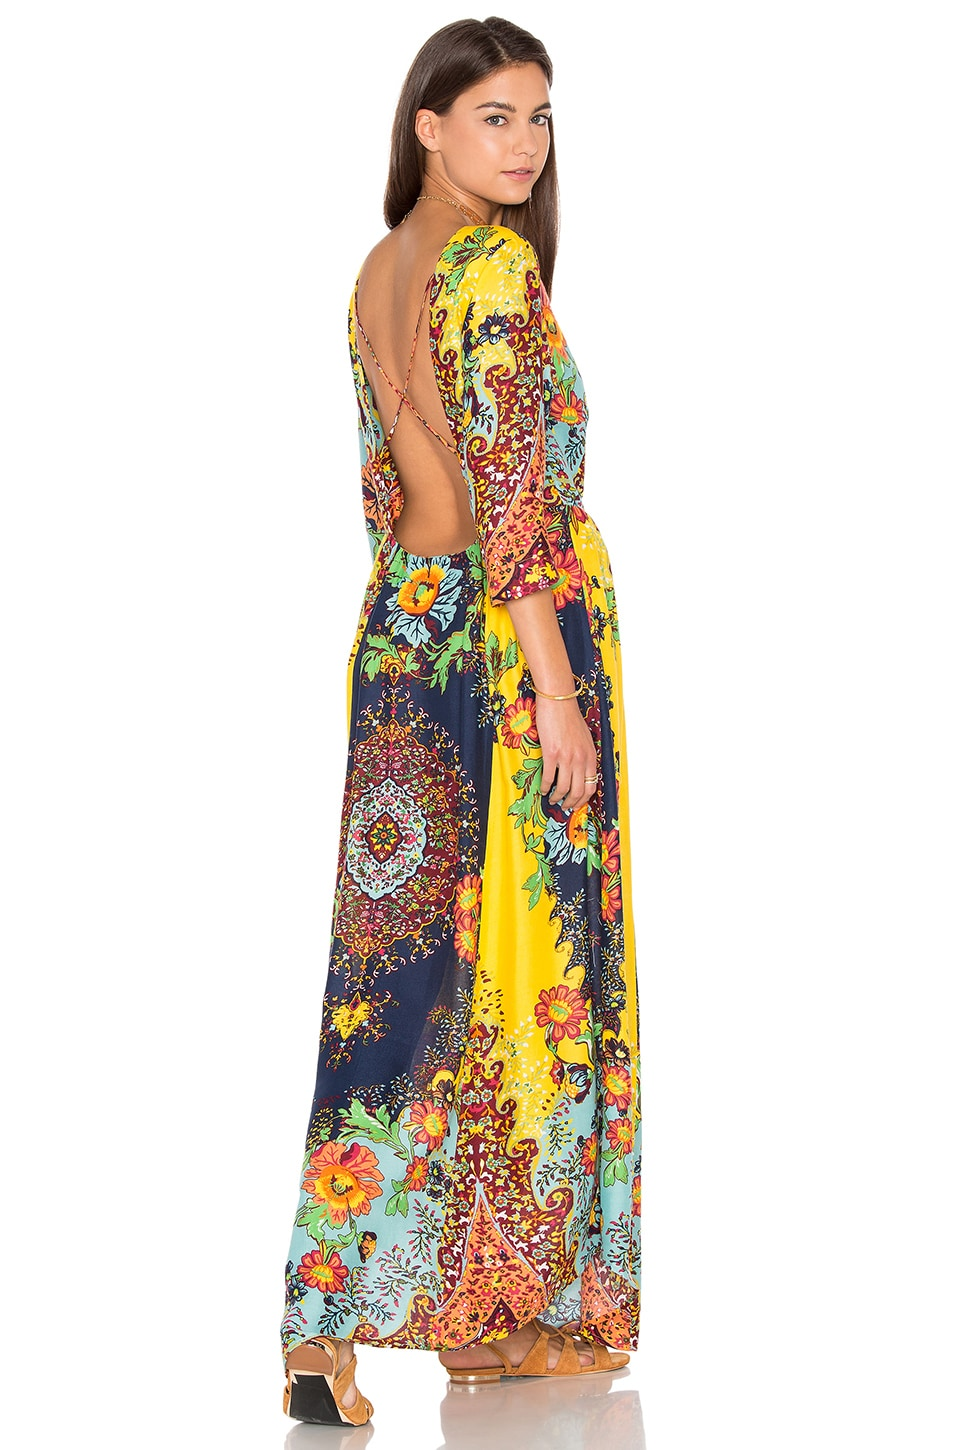 FARM Maxi Dress in Multi